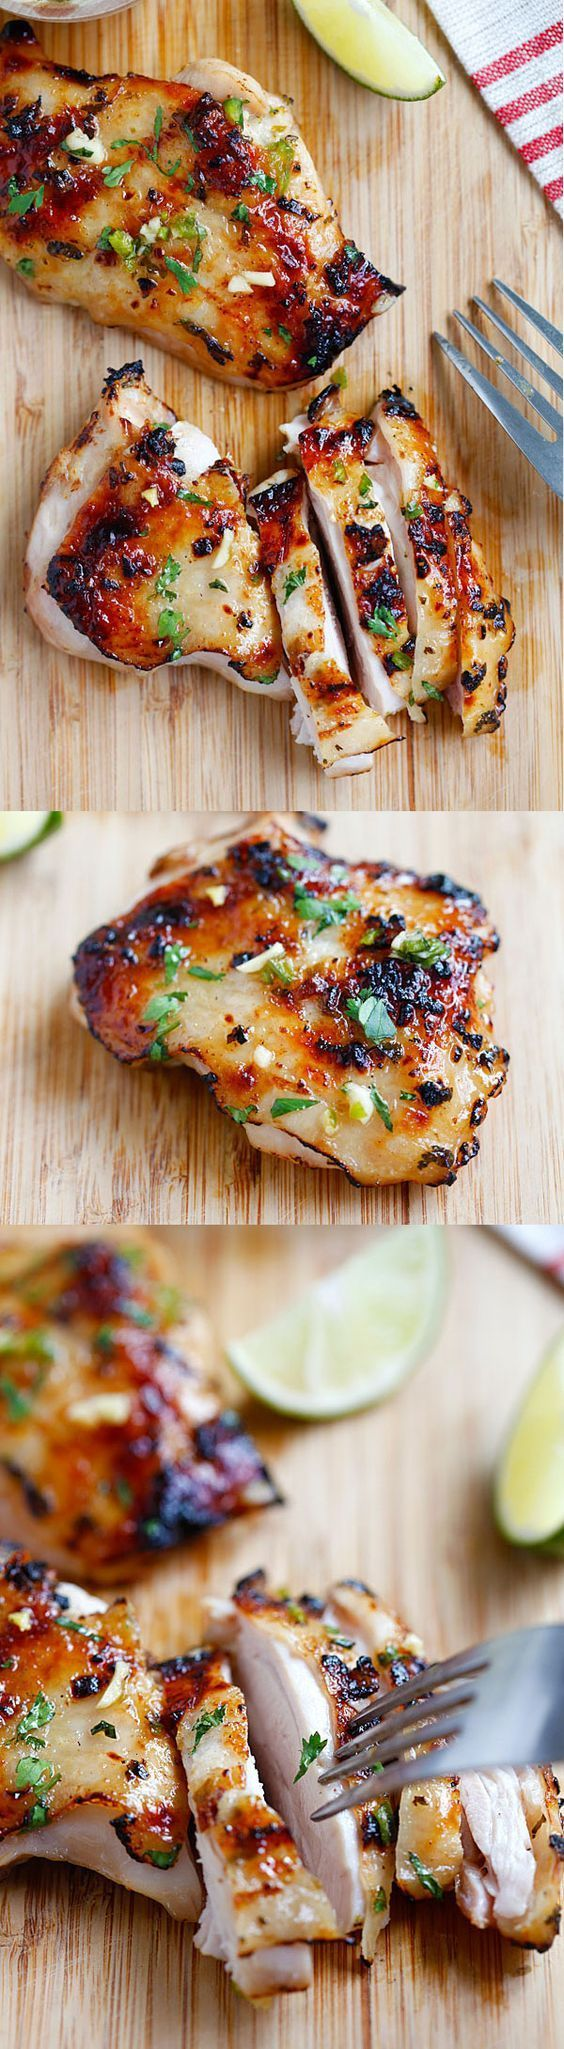 Whole30 Chili Lime Chicken Recipe plus 25 more of the most pinned Whole30 recipes